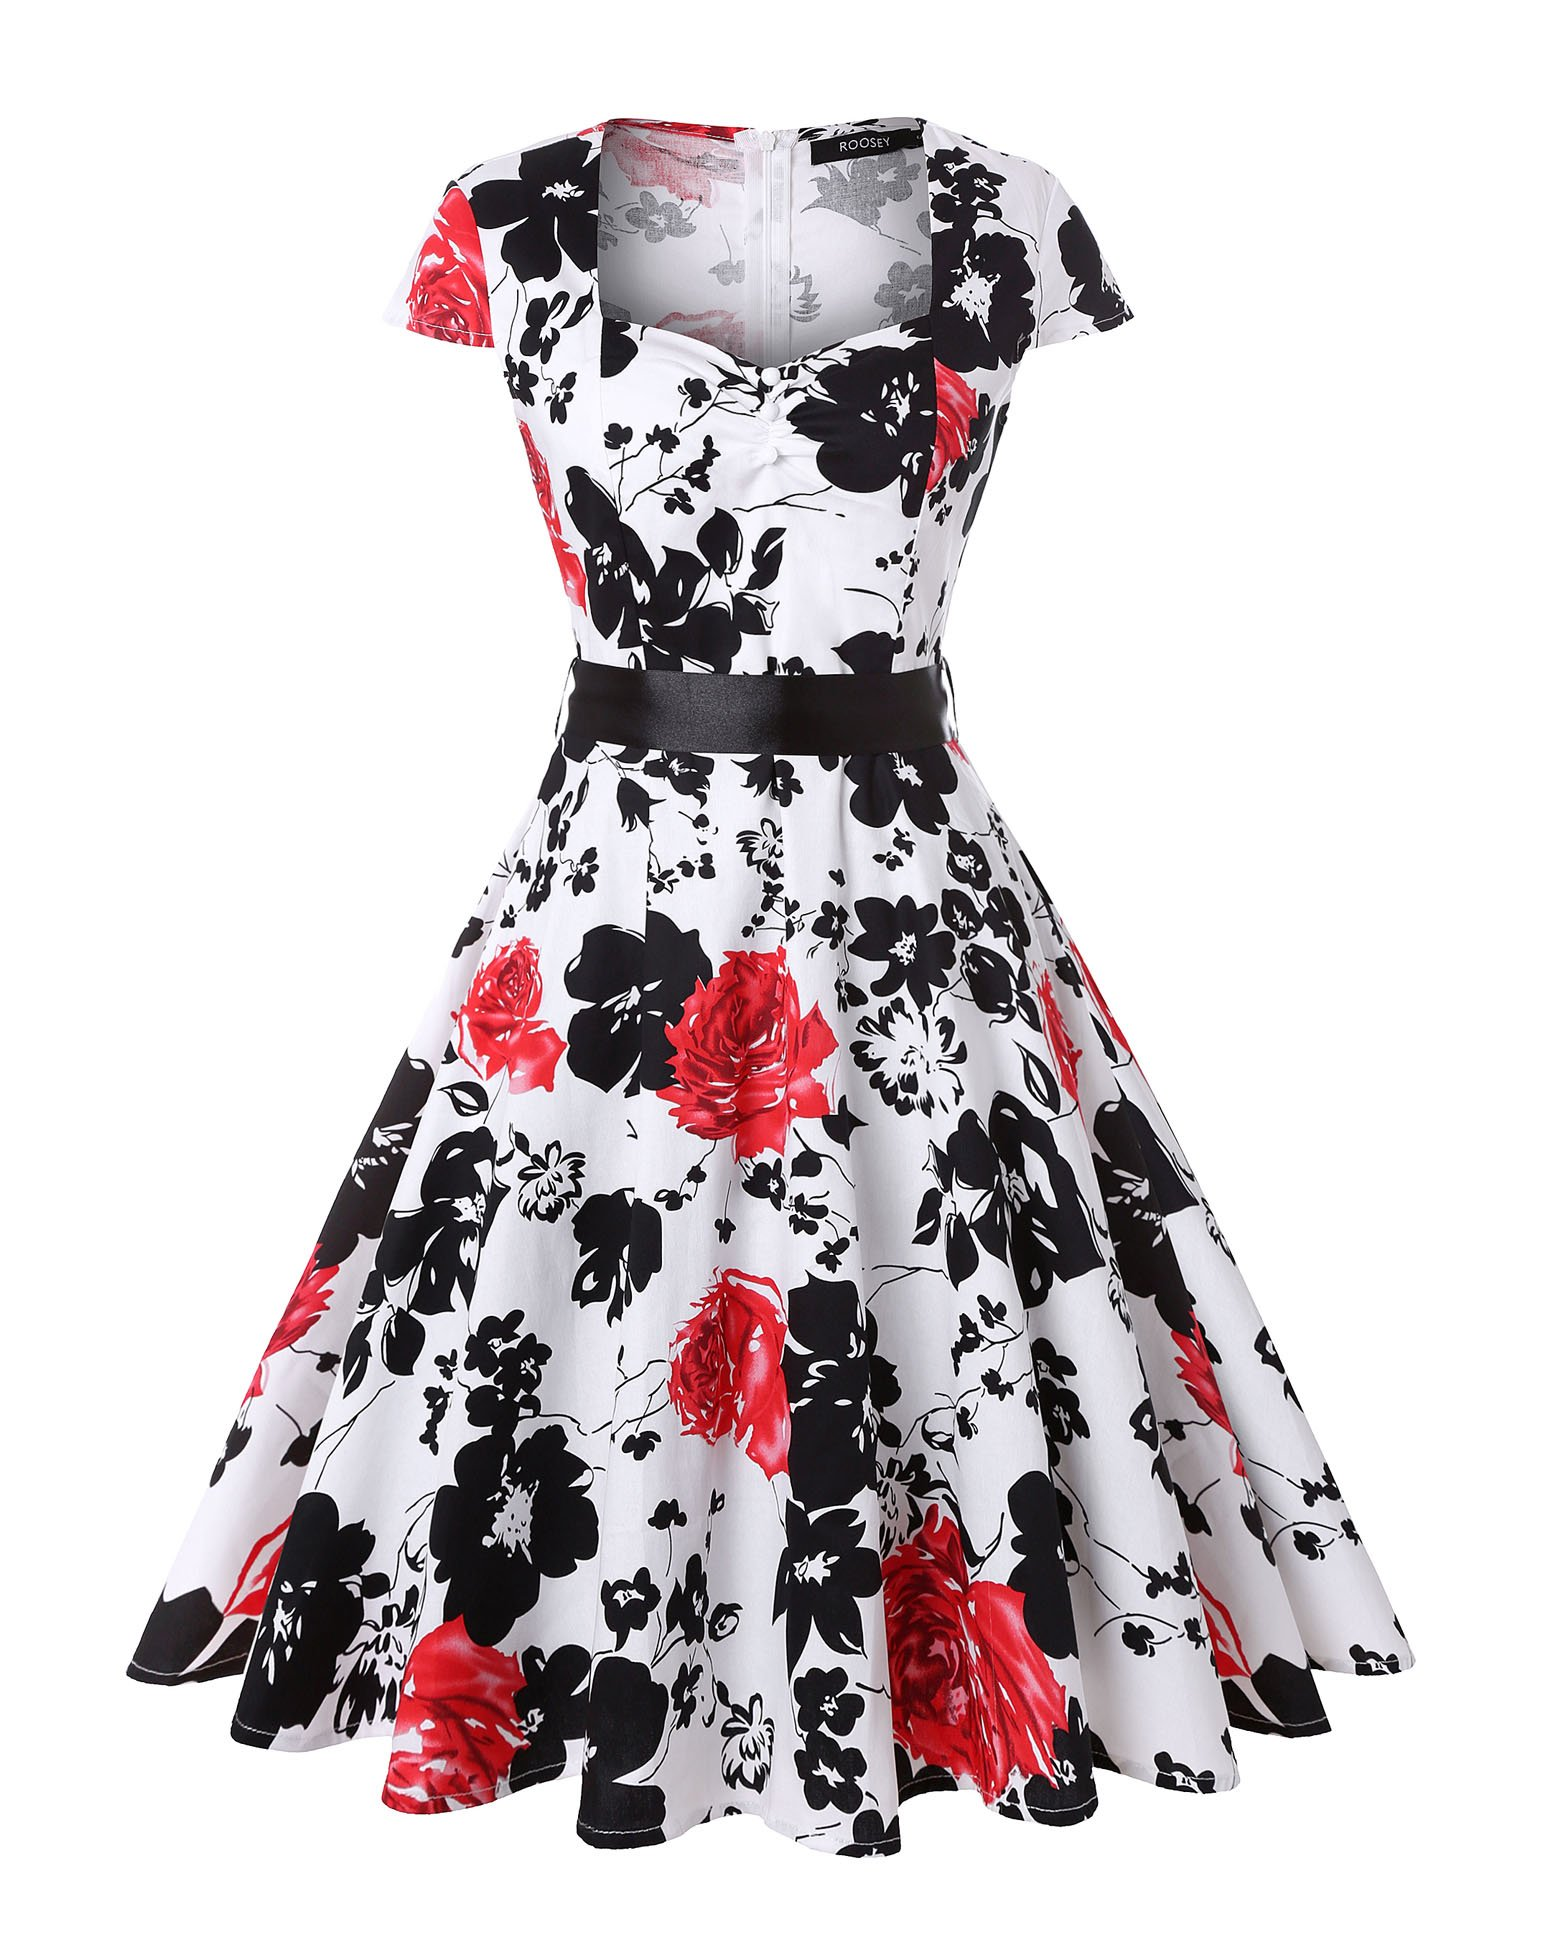 ROOSEY Women's Vintage 1950s Floral A-line Pleated Swing Cocktail Party Dresses